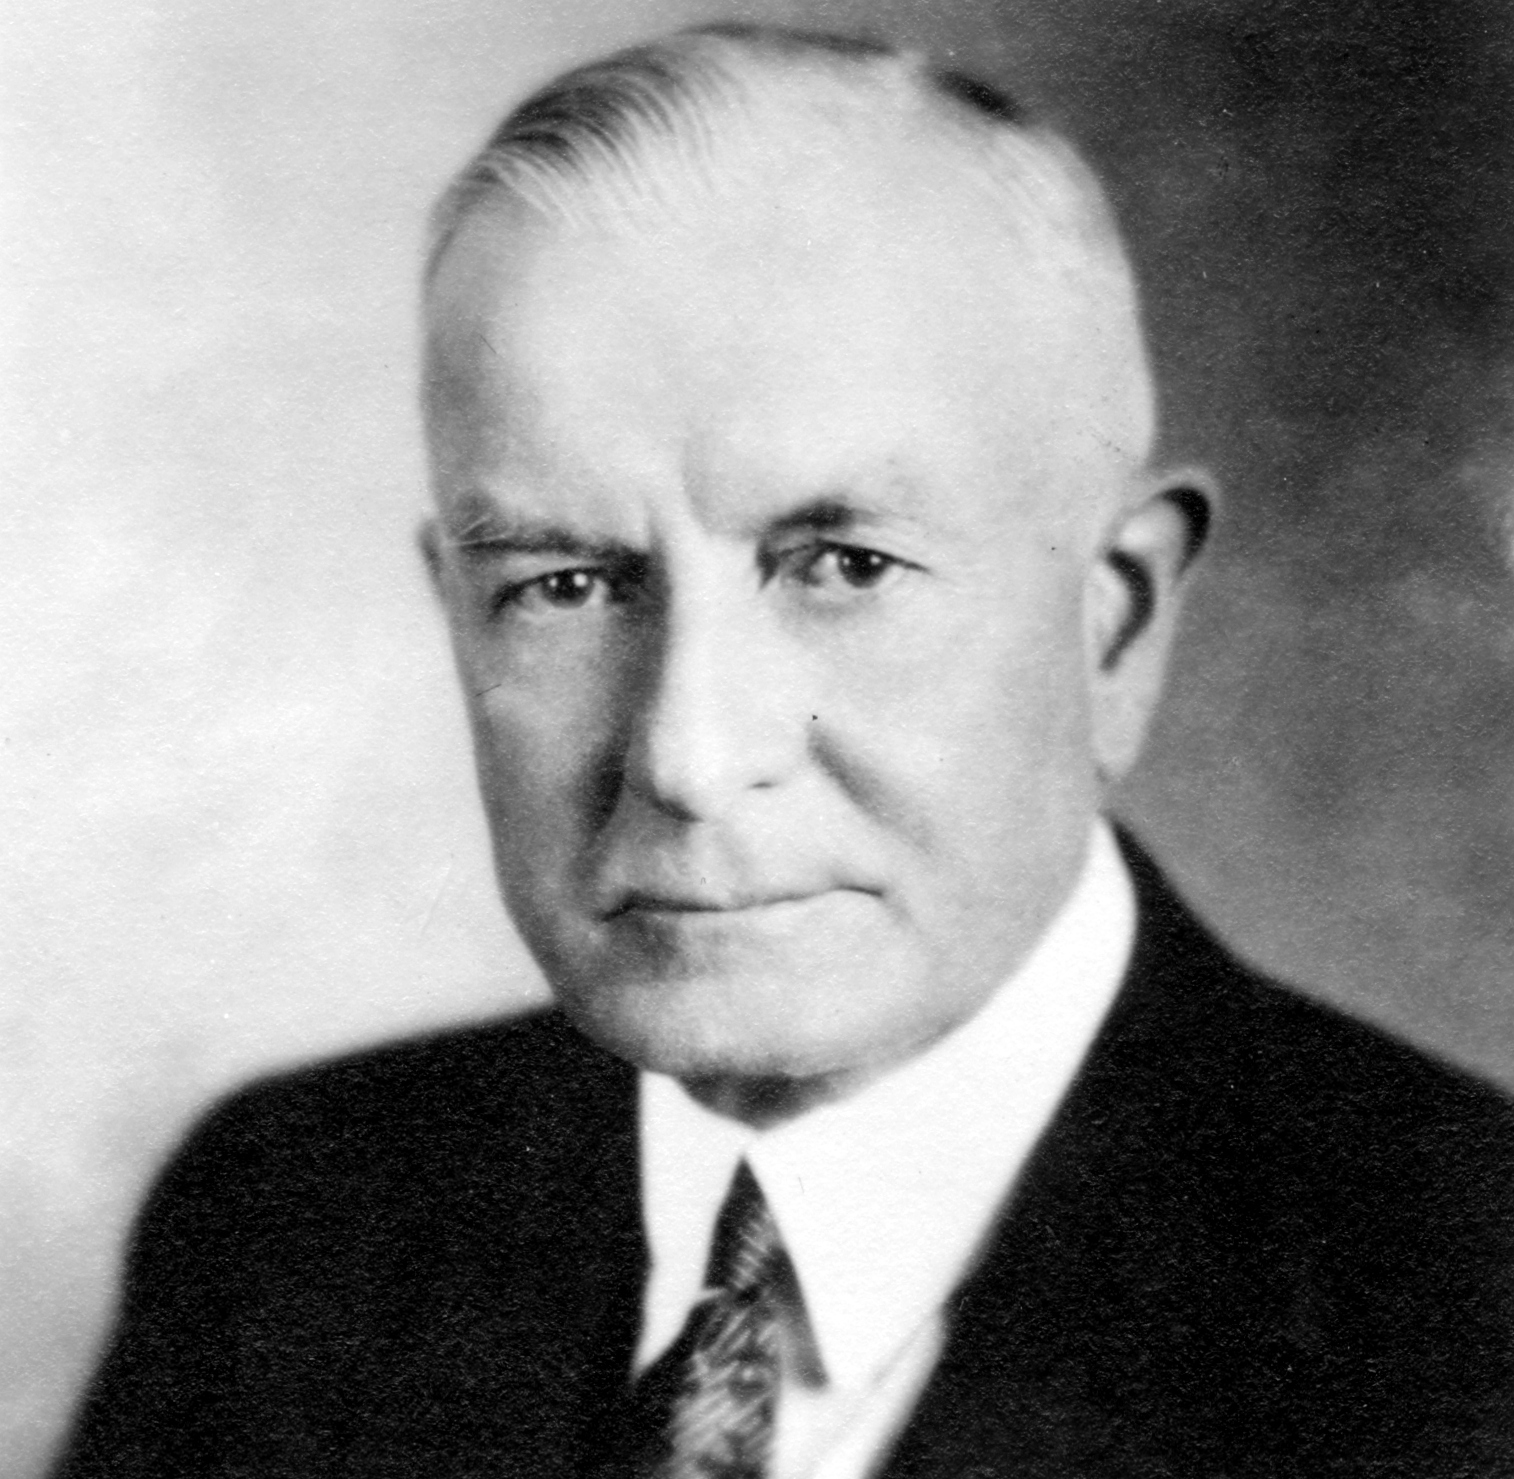 image of IBM President Thomas J. Watson, @1920s, from IBM Corporate Archives